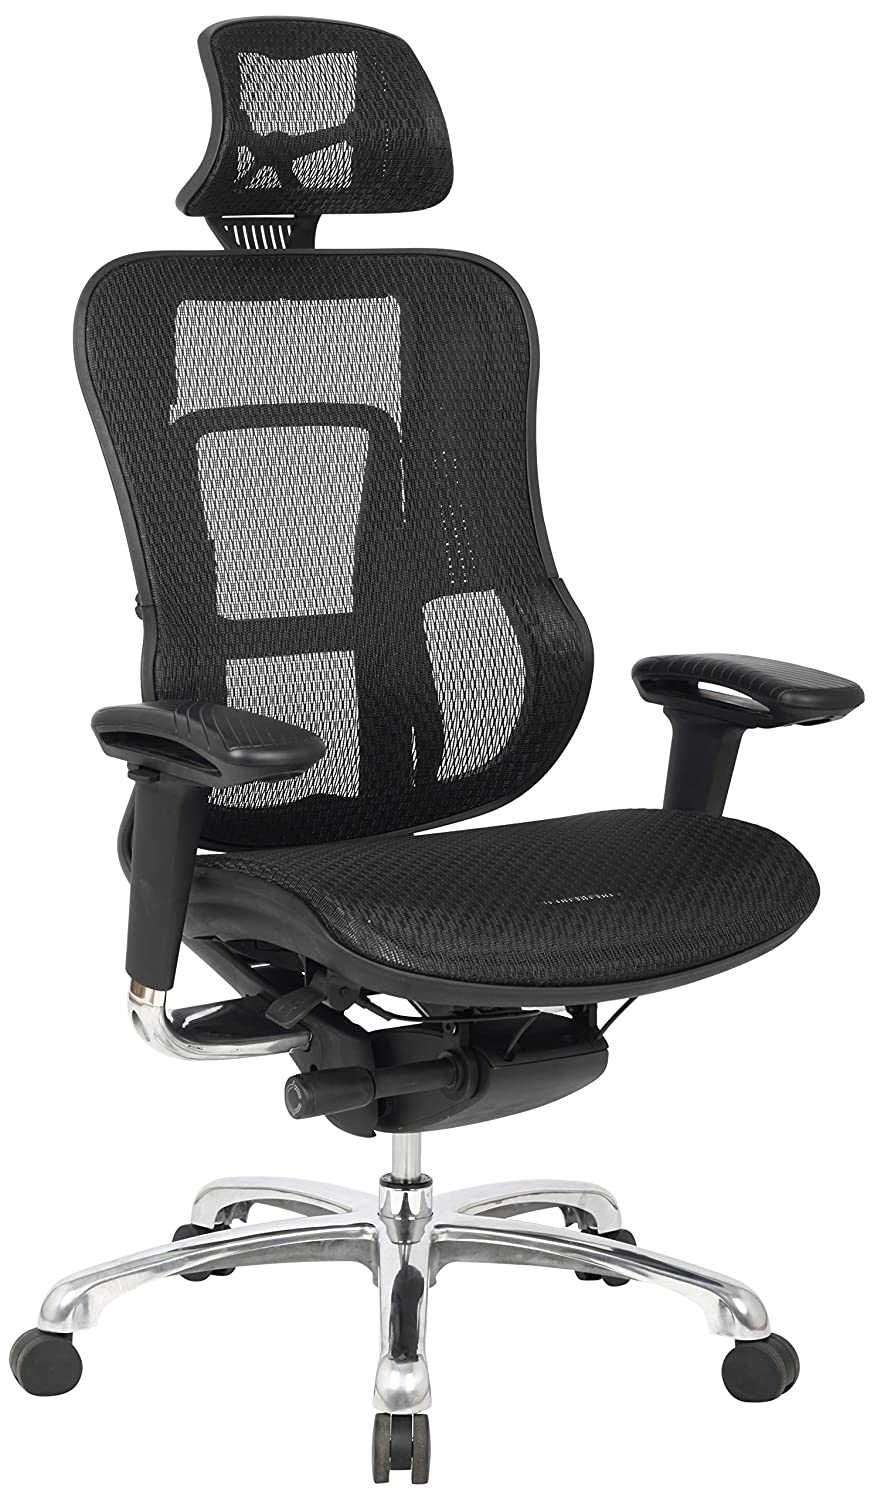 Eliza Tinsley Furniture Azteken Konturierte Mesh Executive Sessel, schwarz